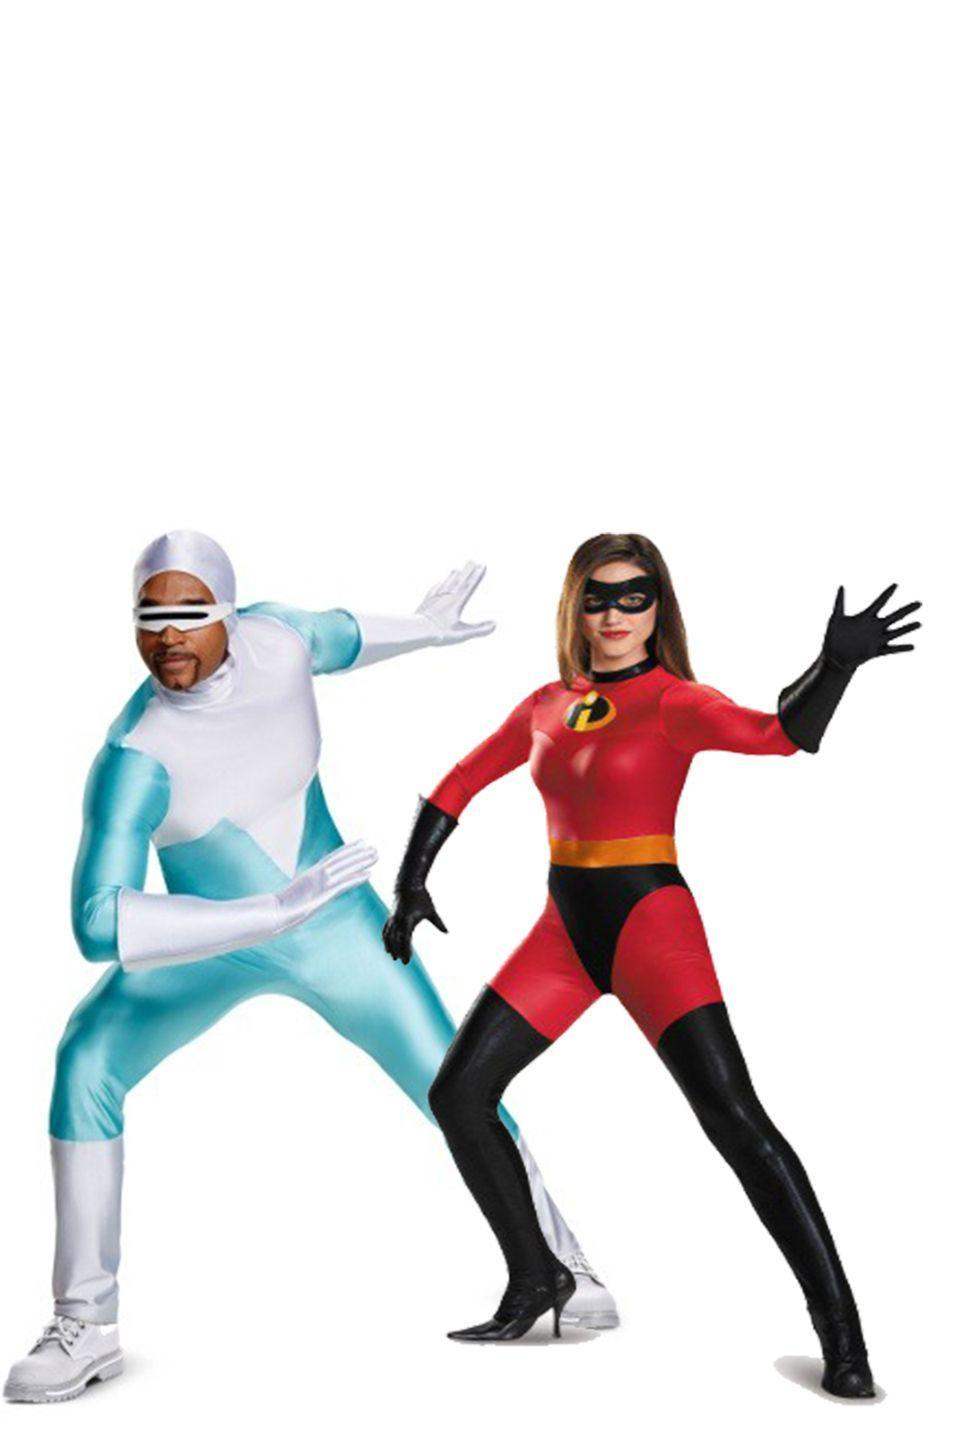 """<p>As fun as Mr. Incredible is, Frozone is even better. Change up the classic Mr. and Mrs. Incredible look and opt for everyone's favorite guy known for manipulating moisture. </p><p><a class=""""link rapid-noclick-resp"""" href=""""https://go.redirectingat.com?id=74968X1596630&url=https%3A%2F%2Fwww.halloweencostumes.com%2Fdisney-incredibles-2-deluxe-adult-frozone-costume.html&sref=https%3A%2F%2Fwww.womansday.com%2Fstyle%2Fg28691602%2Fdisney-couples-costumes%2F"""" rel=""""nofollow noopener"""" target=""""_blank"""" data-ylk=""""slk:SHOP FROZONE COSTUME"""">SHOP FROZONE COSTUME</a></p><p><a class=""""link rapid-noclick-resp"""" href=""""https://go.redirectingat.com?id=74968X1596630&url=https%3A%2F%2Fwww.halloweencostumes.com%2Fmrs-incredible-bodysuit-costume.html&sref=https%3A%2F%2Fwww.womansday.com%2Fstyle%2Fg28691602%2Fdisney-couples-costumes%2F"""" rel=""""nofollow noopener"""" target=""""_blank"""" data-ylk=""""slk:SHOP MRS. INCREDIBLE COSTUME"""">SHOP MRS. INCREDIBLE COSTUME</a> </p>"""